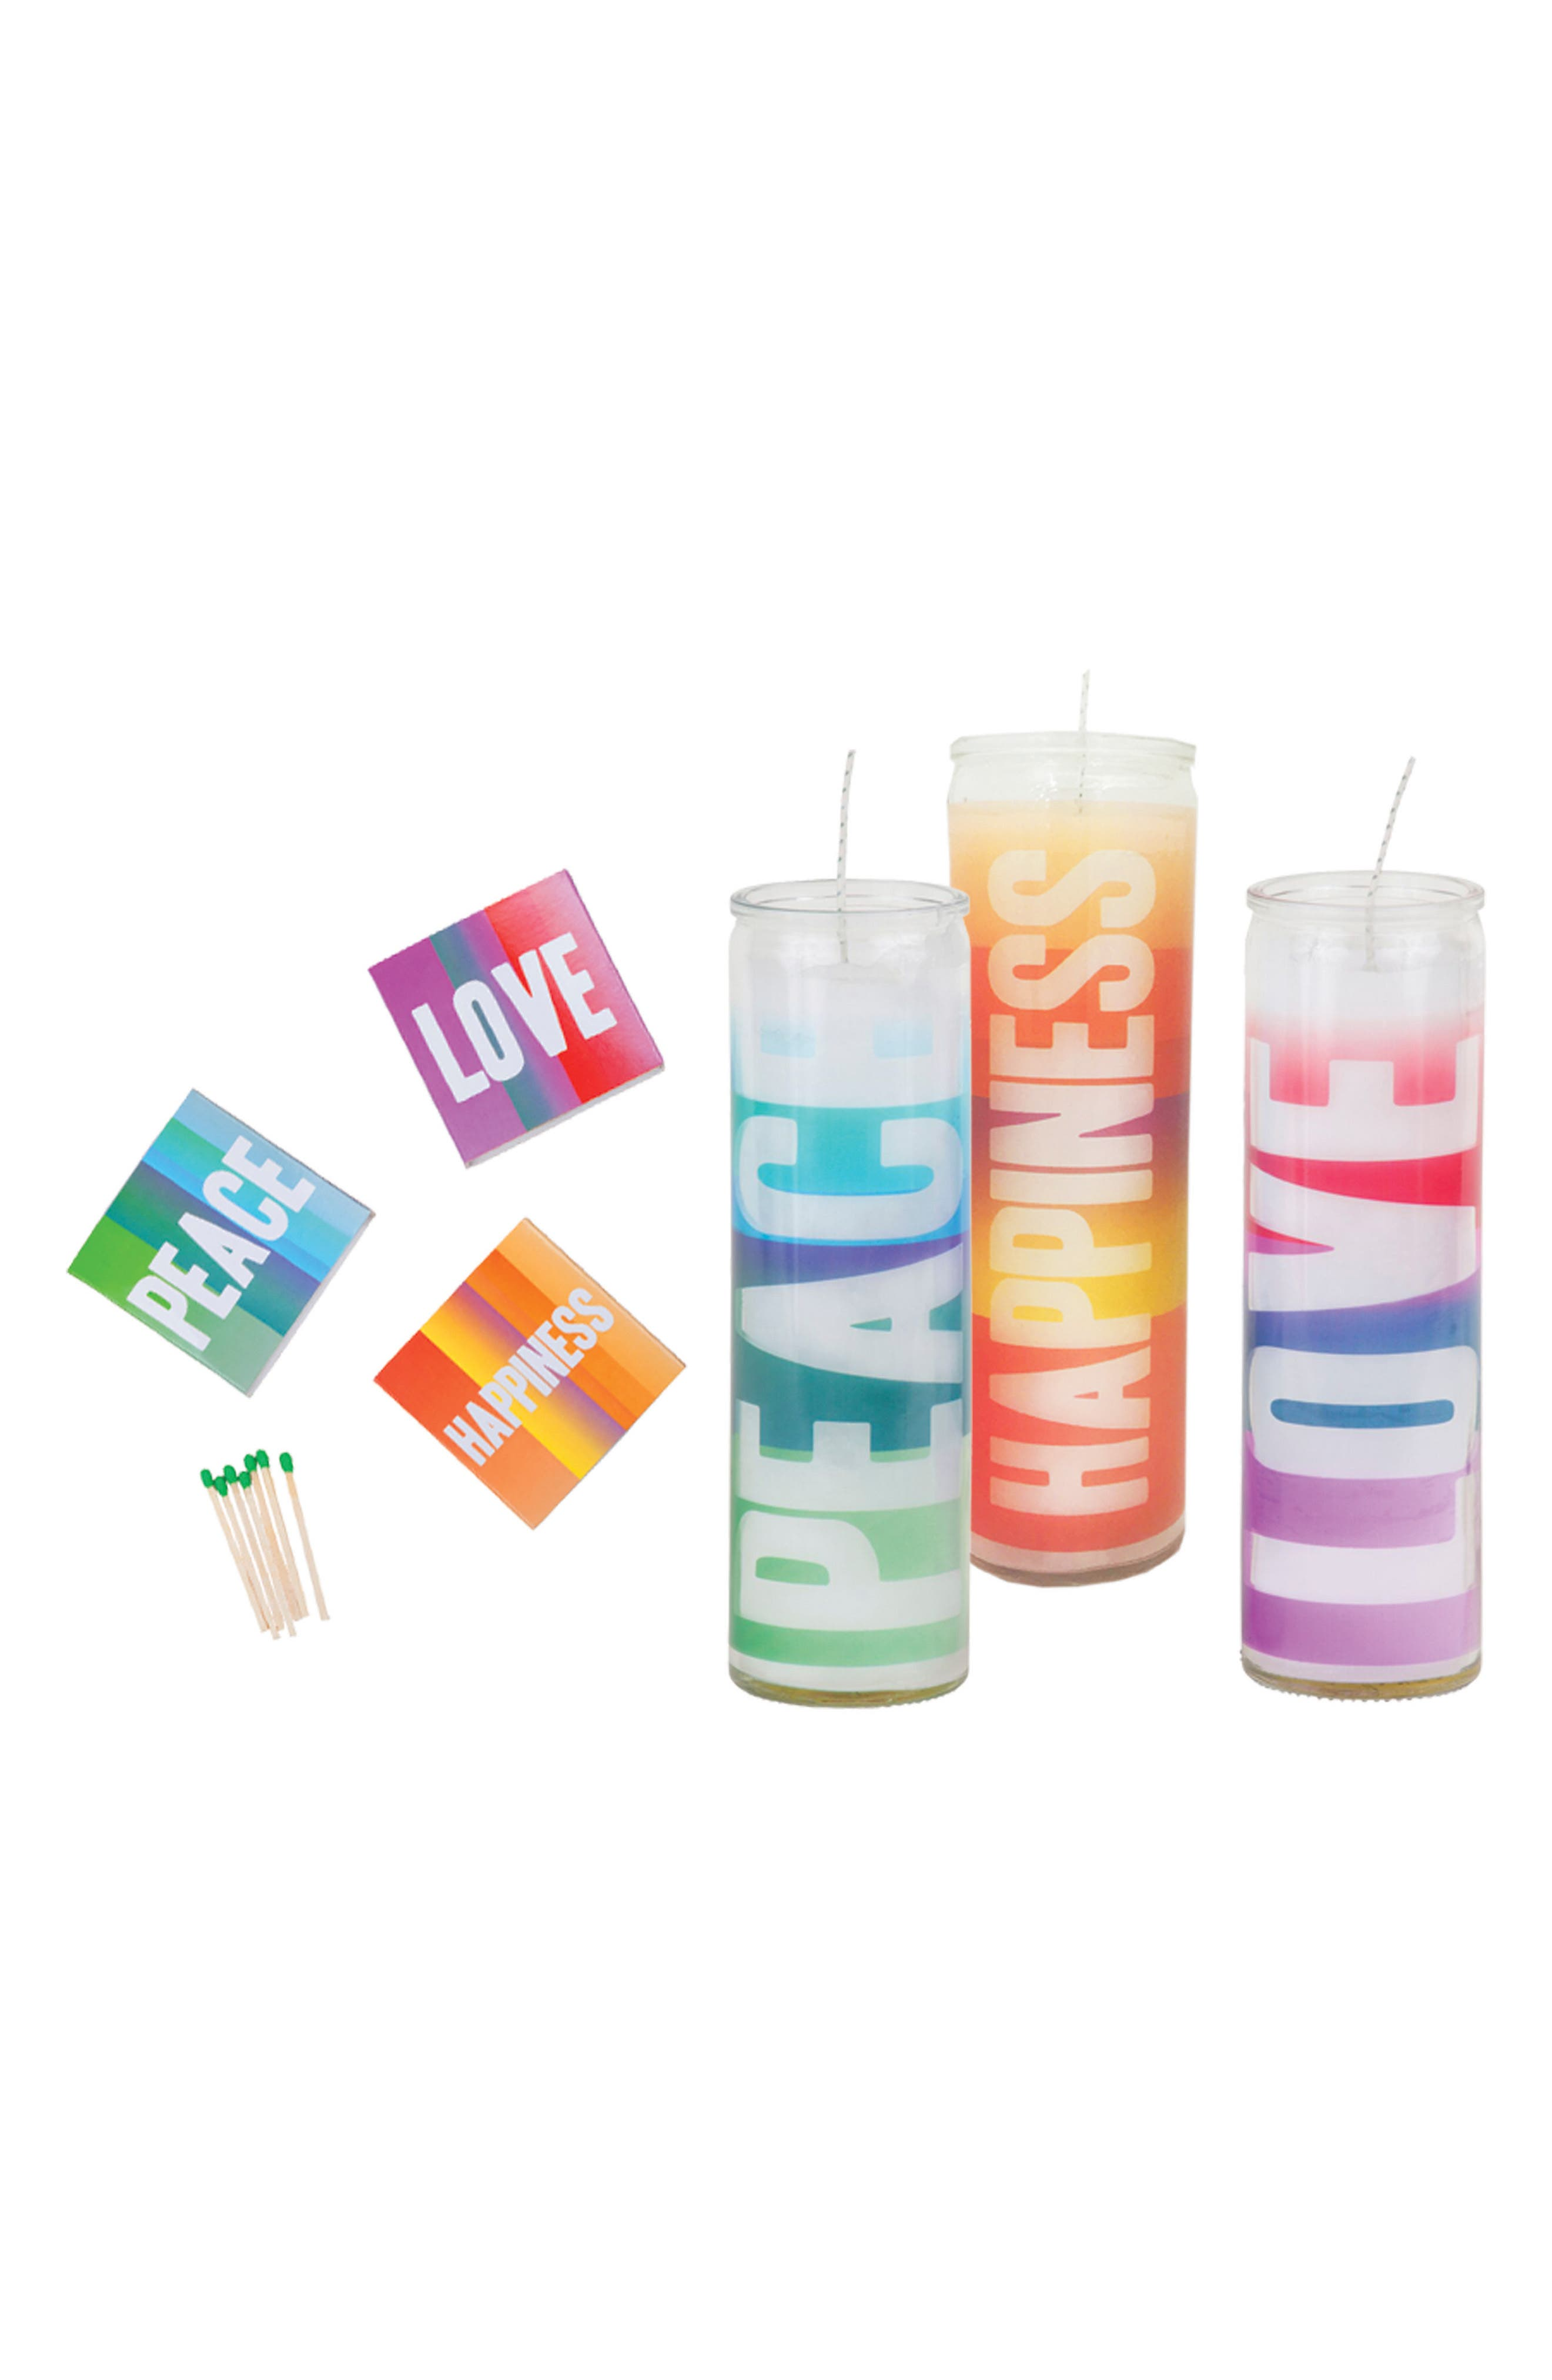 6-Piece Candle Gift Set,                             Main thumbnail 1, color,                             800